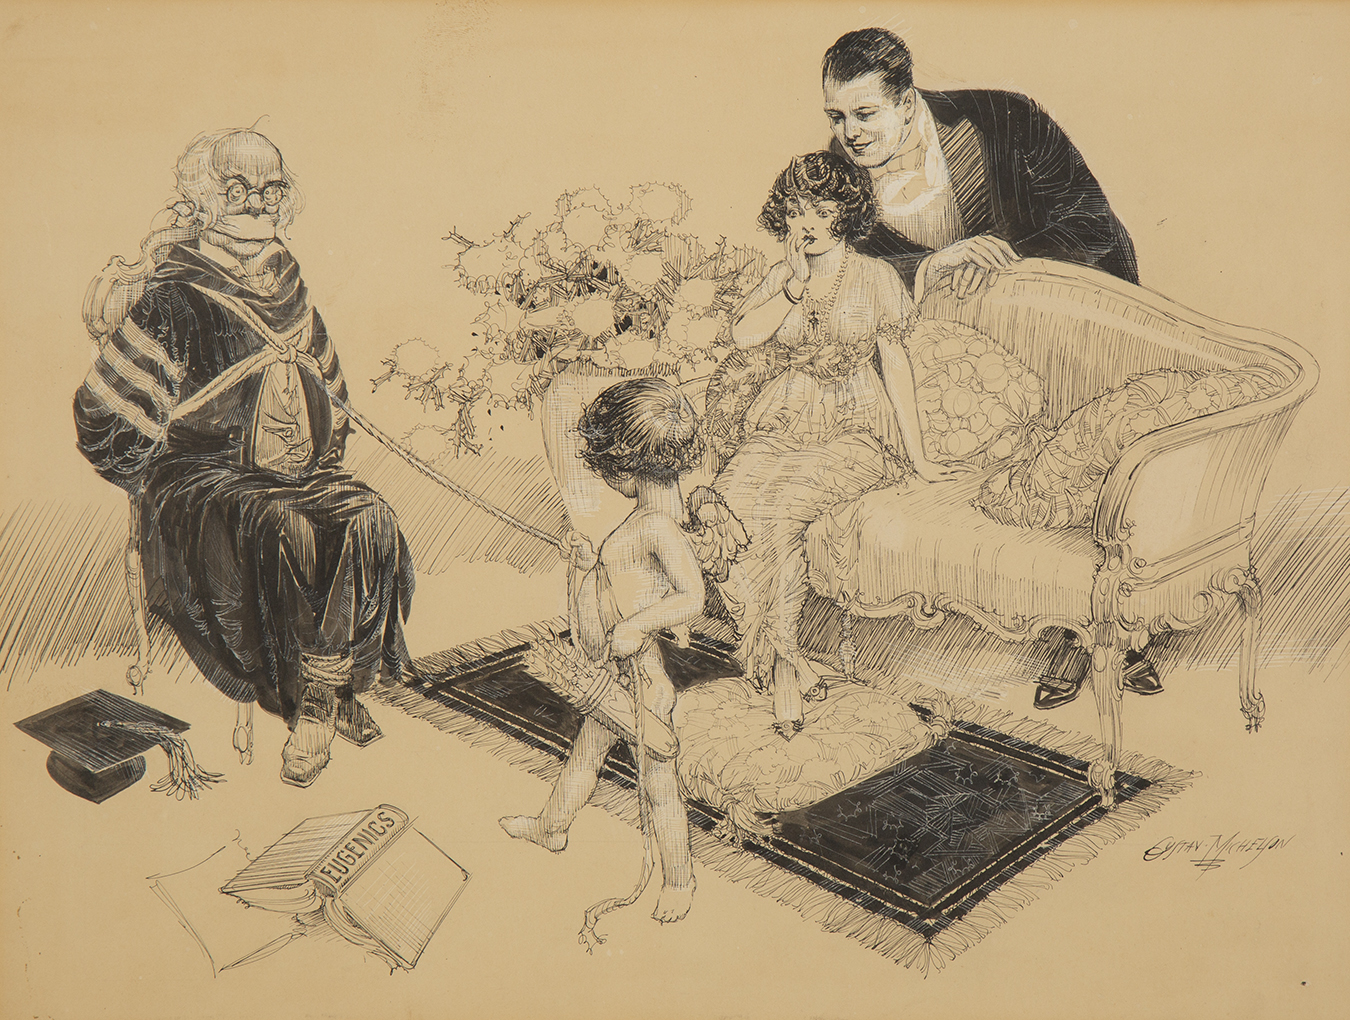 Full view of pen and ink drawing